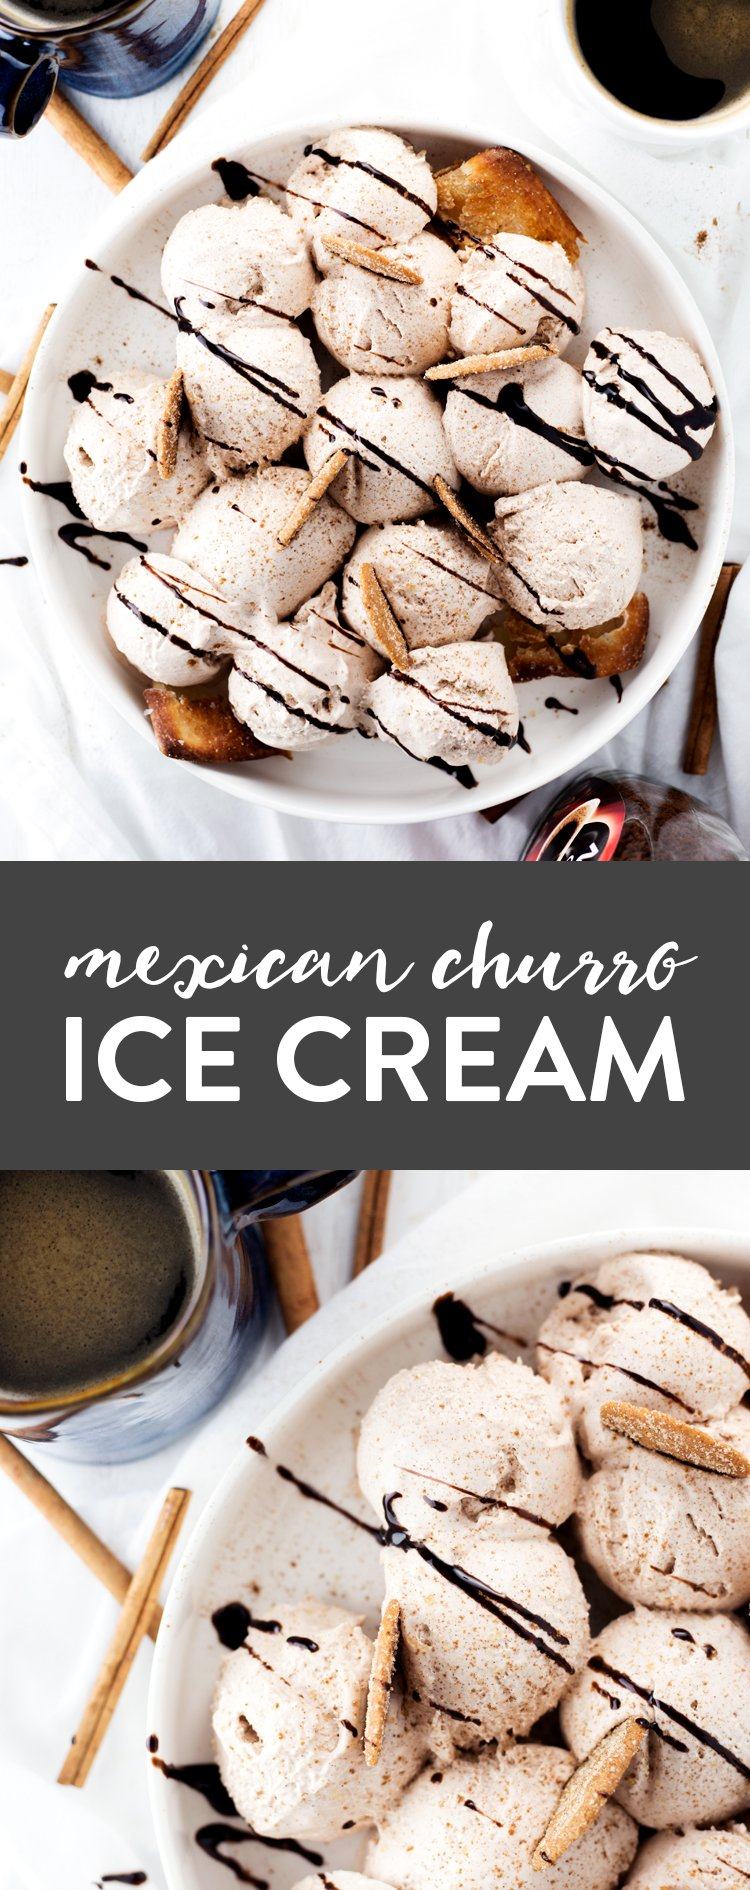 Cool down with this simple and delicious NO CHURN Mexican Churro Ice Cream! Preps in minutes, just pop in the freezer and get ready for dessert! | asimplepantry.com